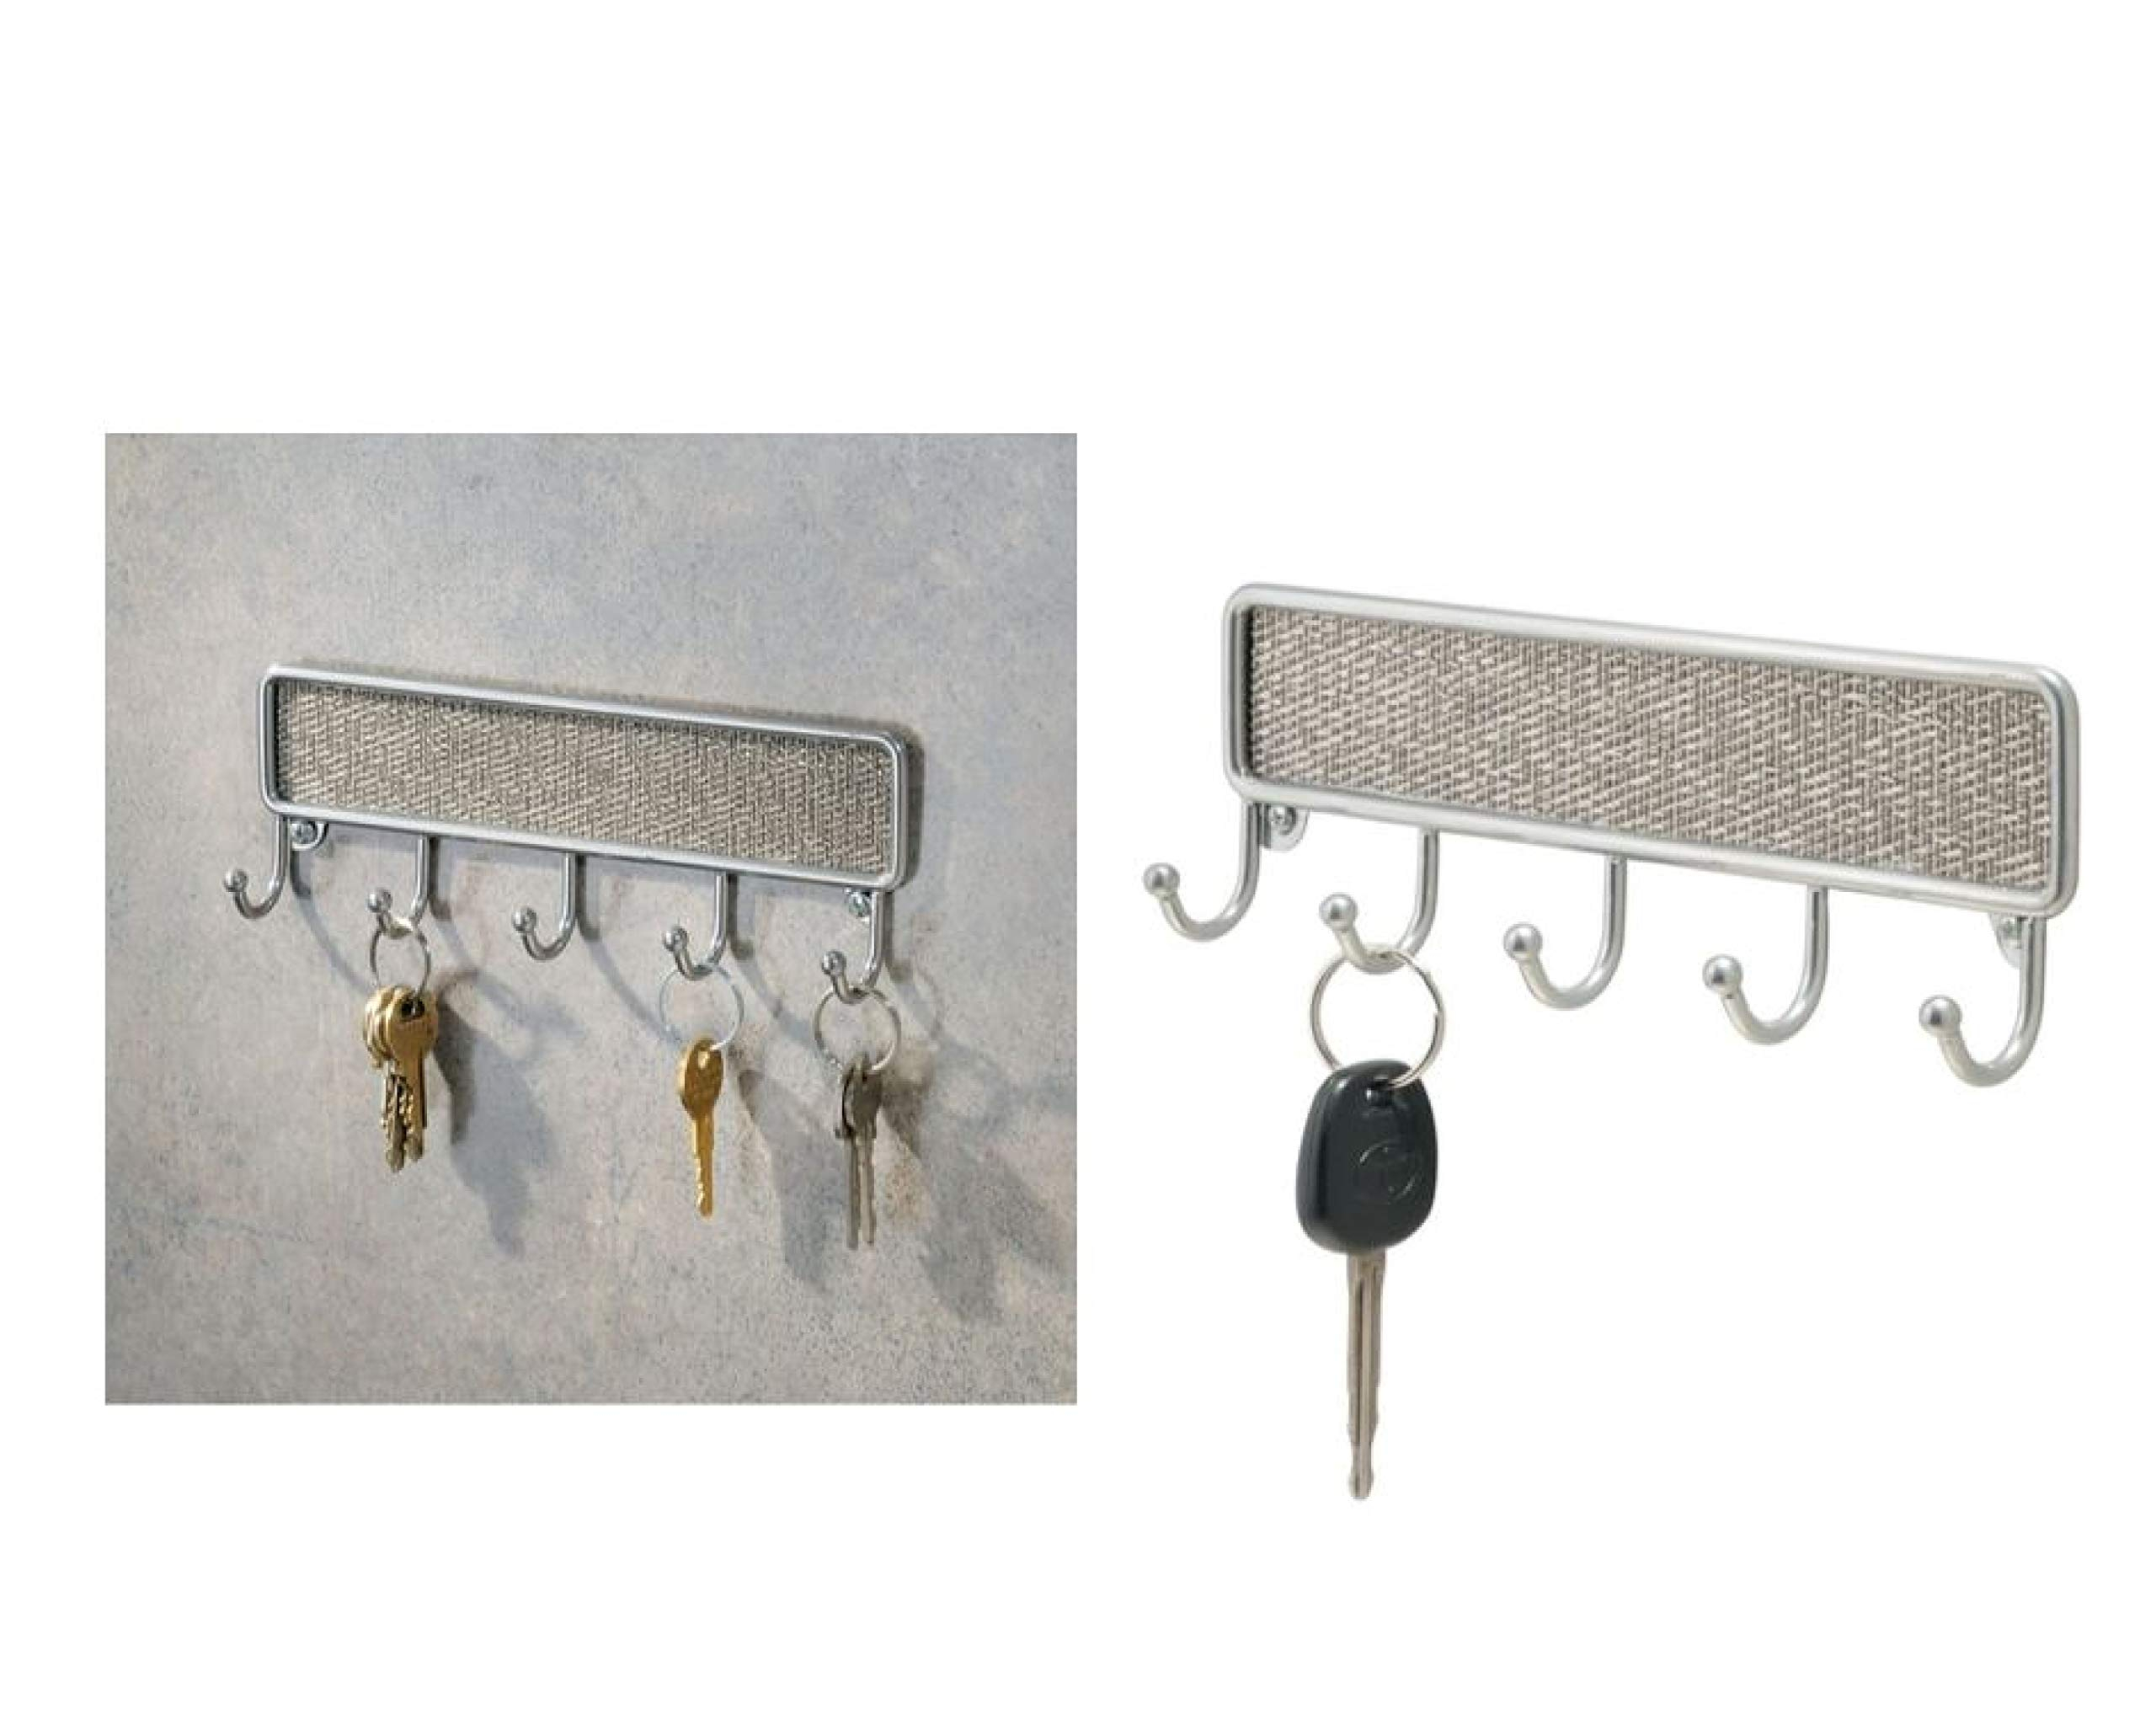 Idesign Twillo Wall Mounted Key Holder Small Metal And Plastic Key Hooks Strip With Five Hooks Silver Coloured Buy Online In Dominica At Dominica Desertcart Com Productid 48769889